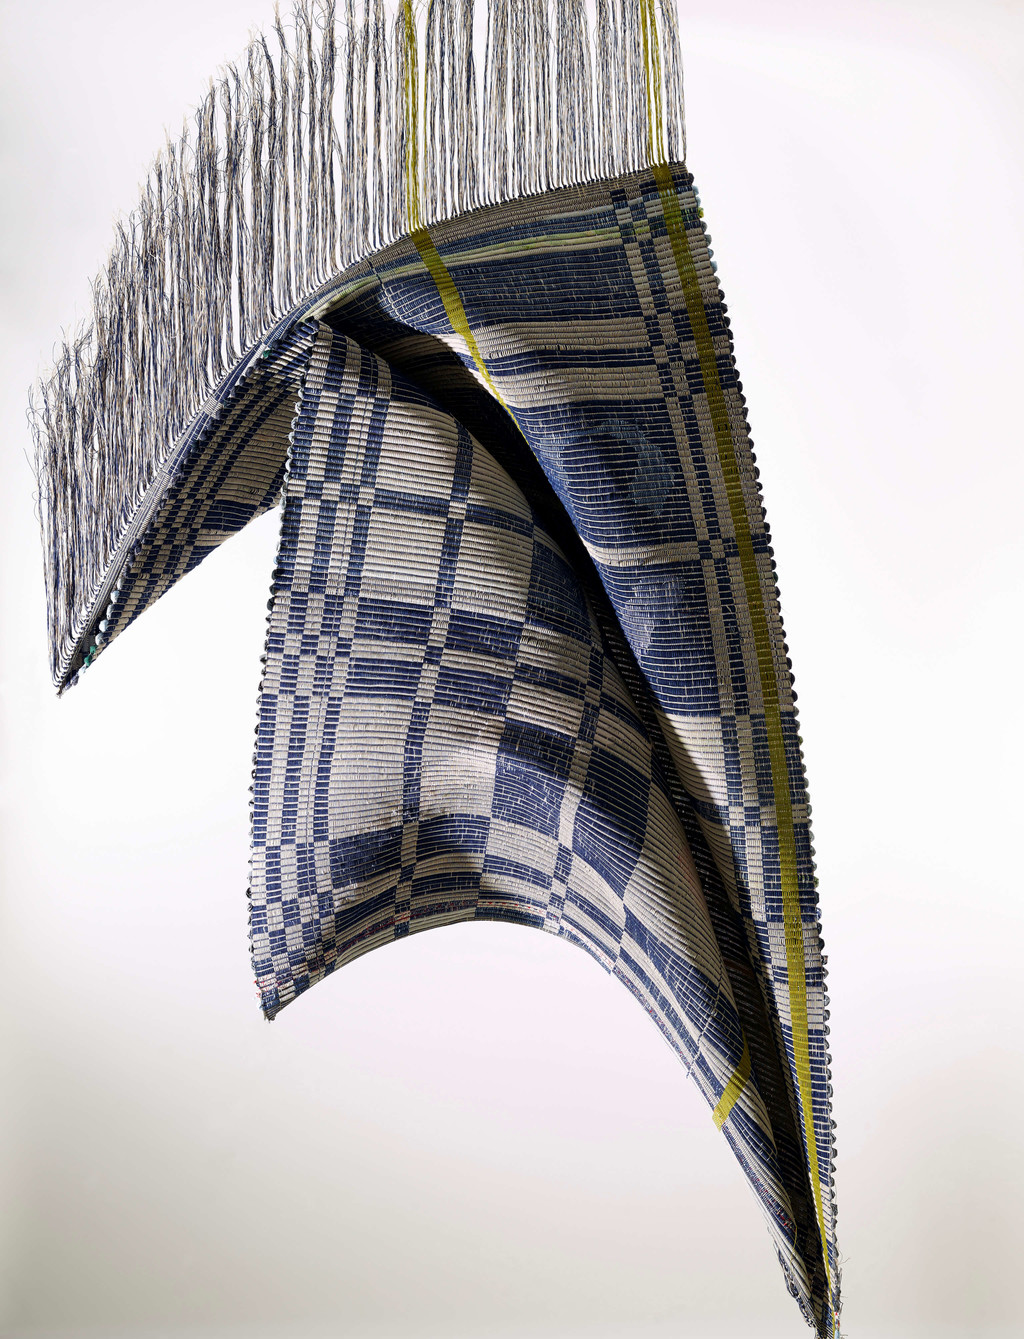 A textile developed by Estelle Bourdet marrying digital sketches and traditional weaving techniques - © Photograph: Moostang, Swiss Design Awards Blog